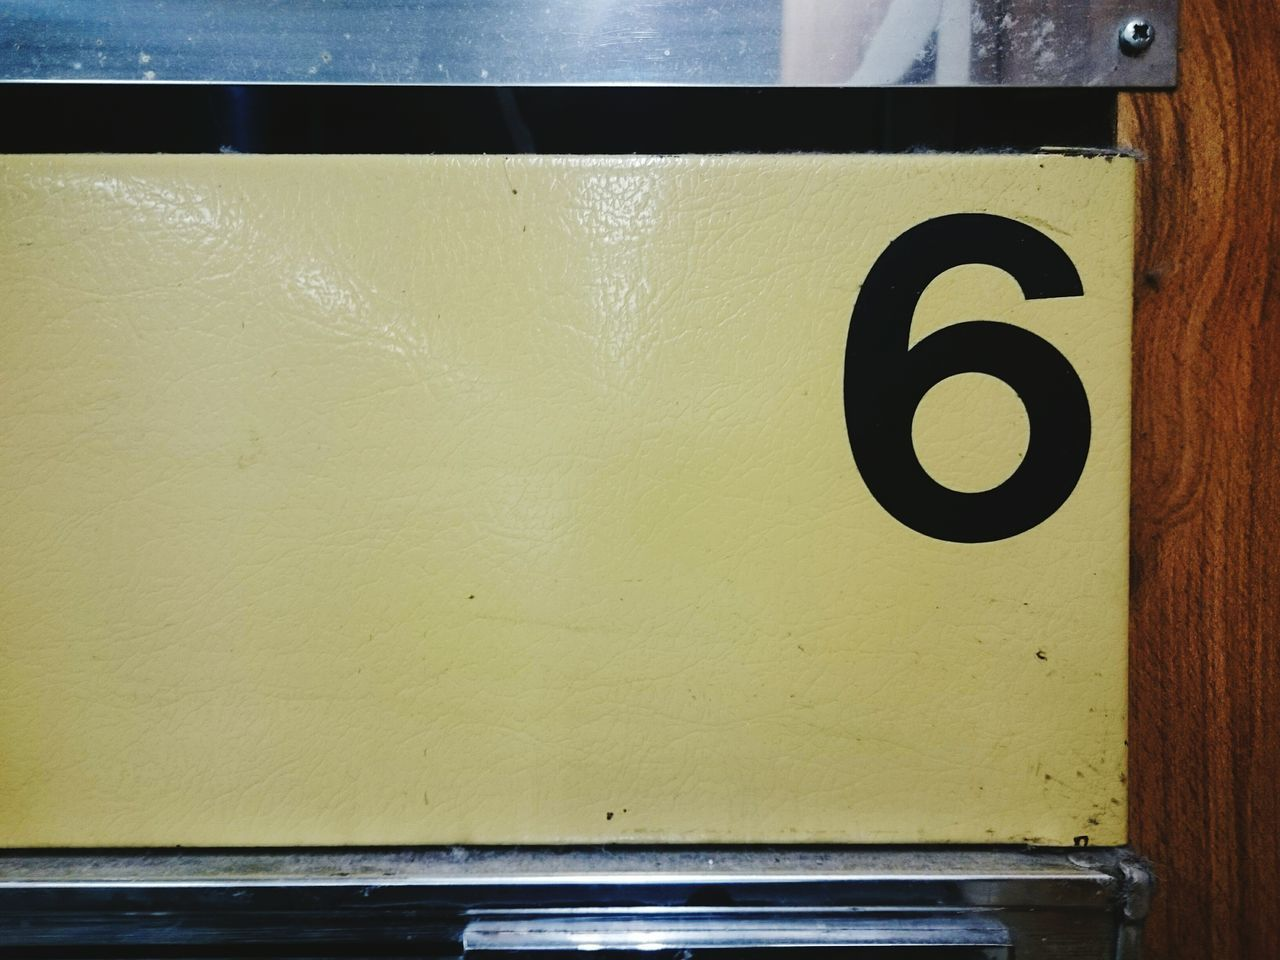 6 Number 6  Six Textures And Surfaces No People Close-up Colour Image Texture And Surfaces City Life Laundromat Laundrette Numbers Inside Photography Inside Washroom Vinylsticker Numbers And Signs Numbersix